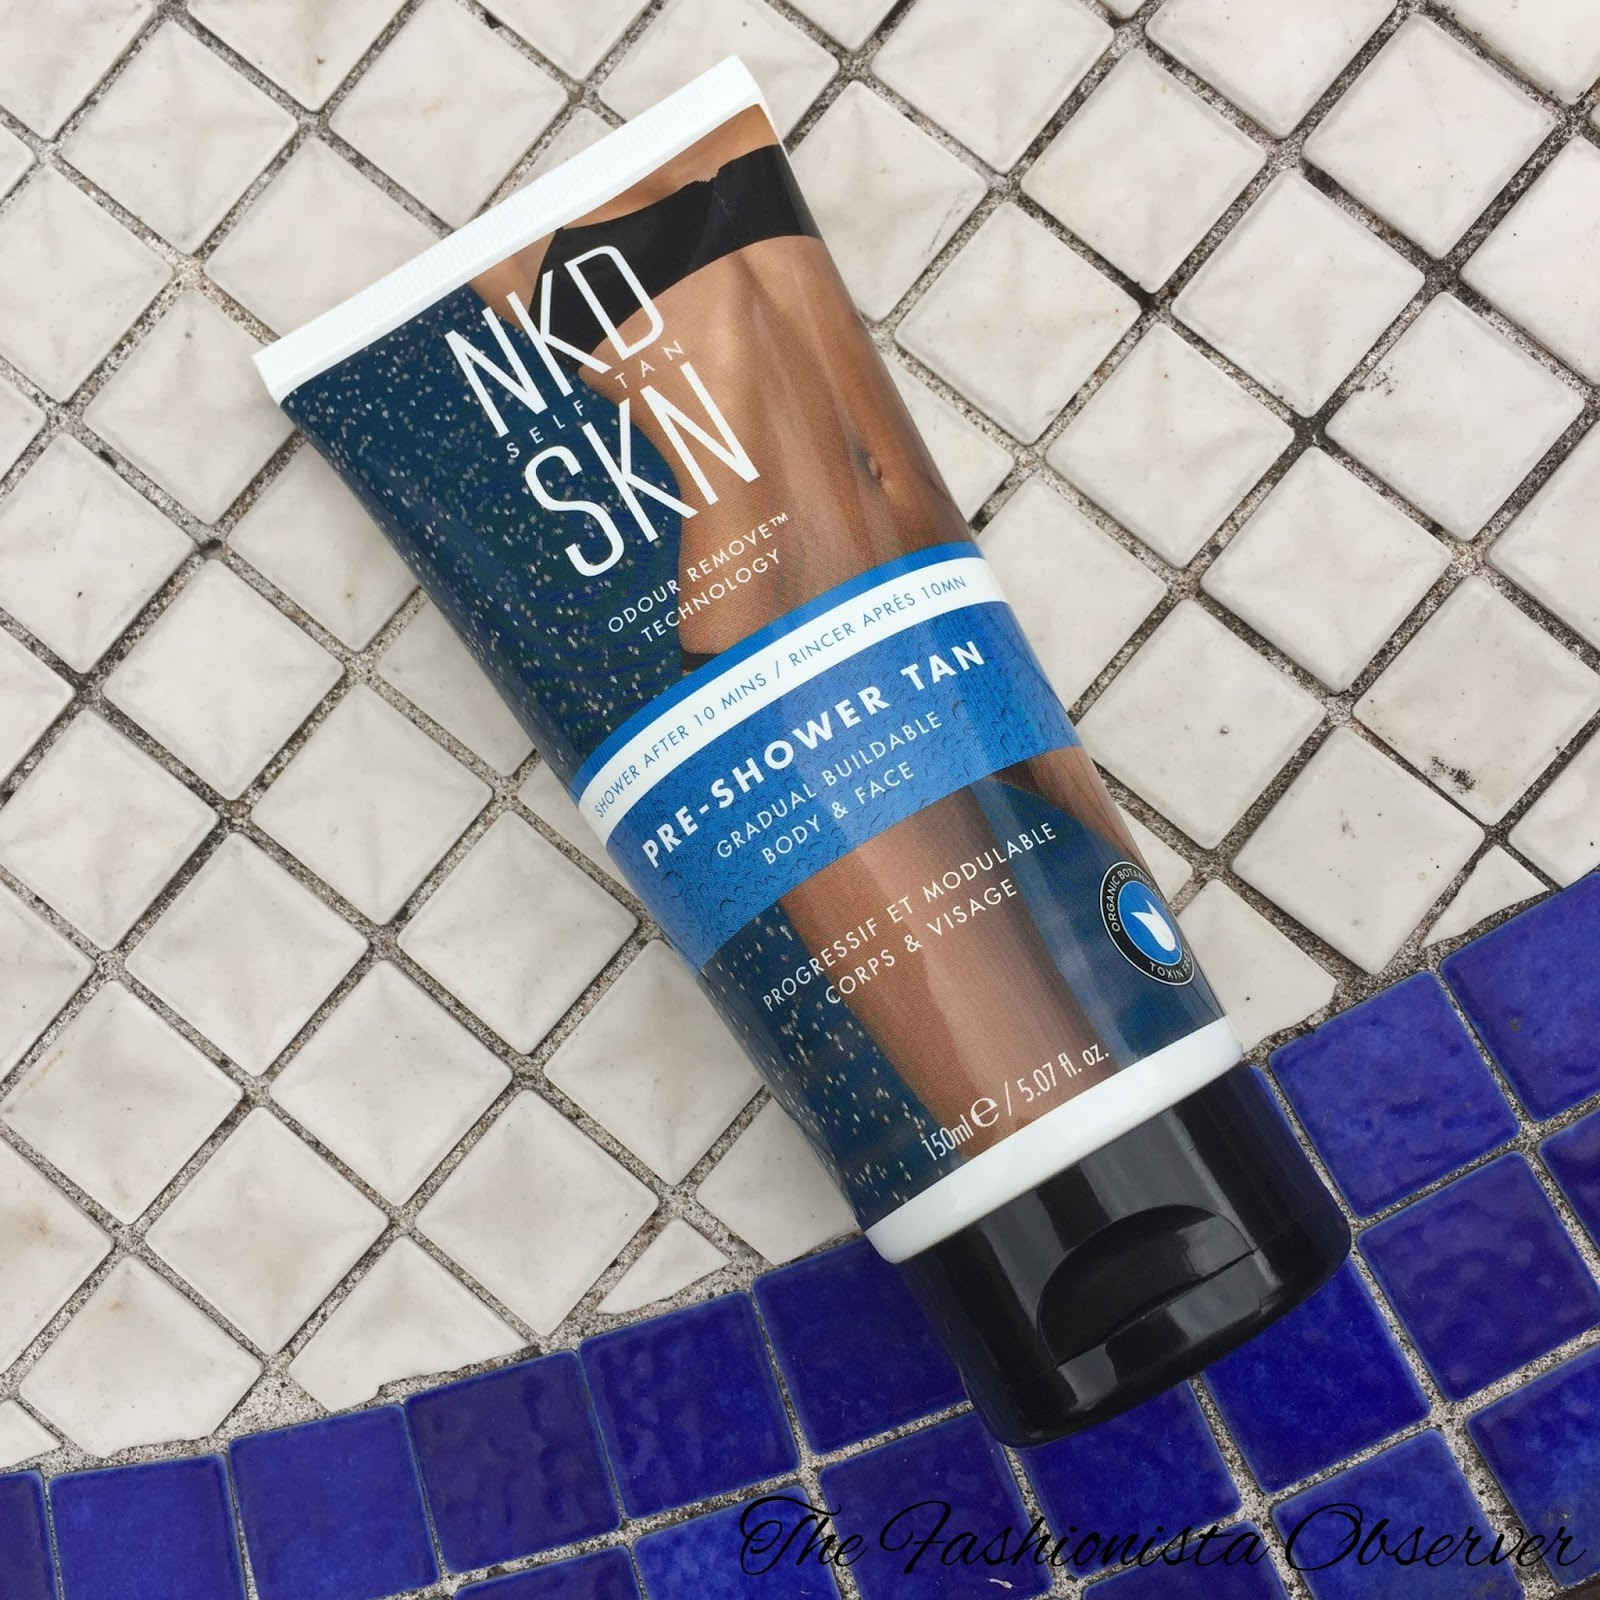 NKD SKN Pre-Shower Tan Review - Can You Shower & Tan? The Fashionista Observer Irish Fashion and Beauty Blog